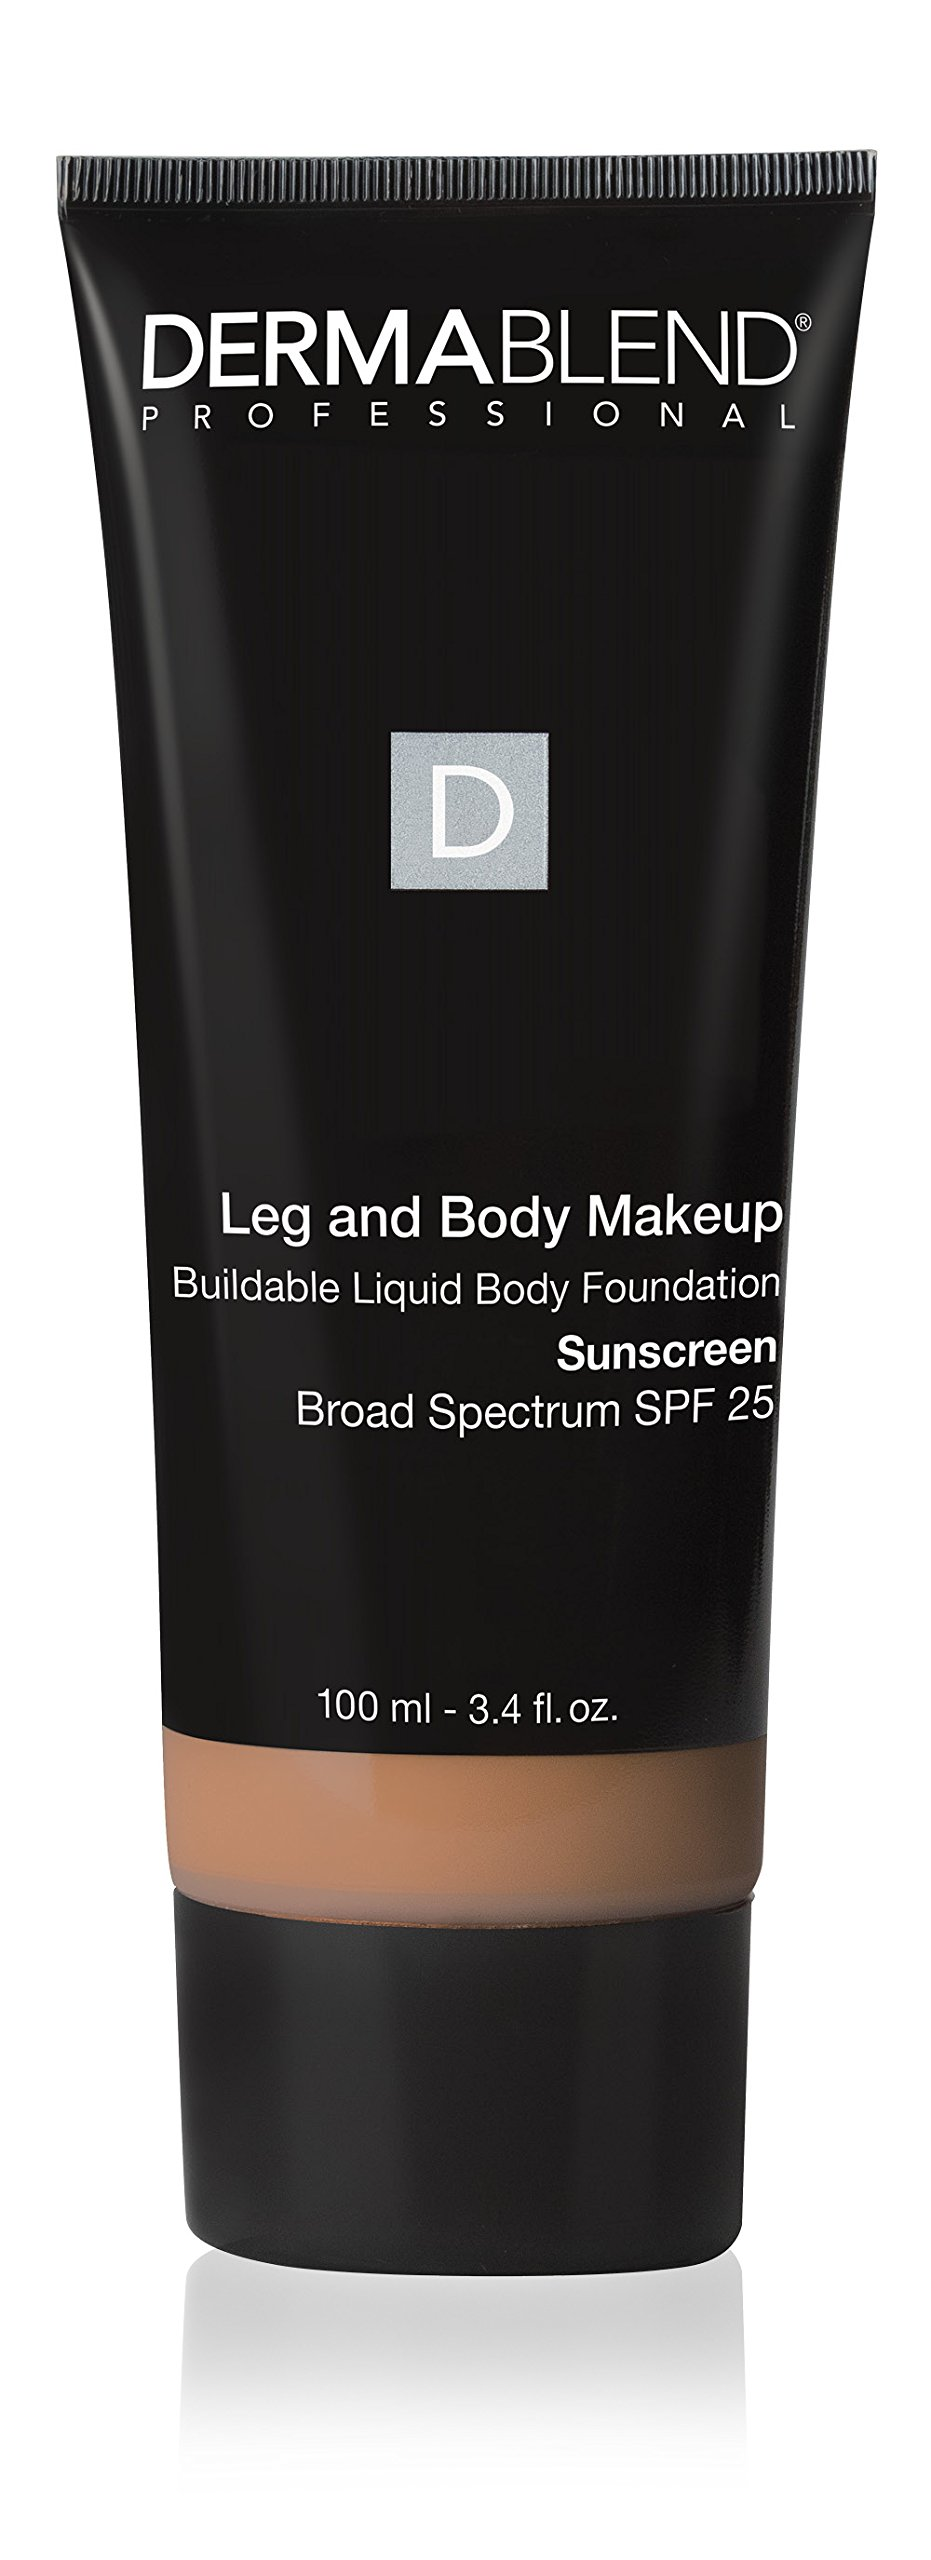 Dermablend Leg and Body Makeup Foundation with SPF 25 for Medium to High Coverage & All-day Hydration, Tattoo Cover Up Makeup, 12 Shades, 3.4 Fl. Oz.